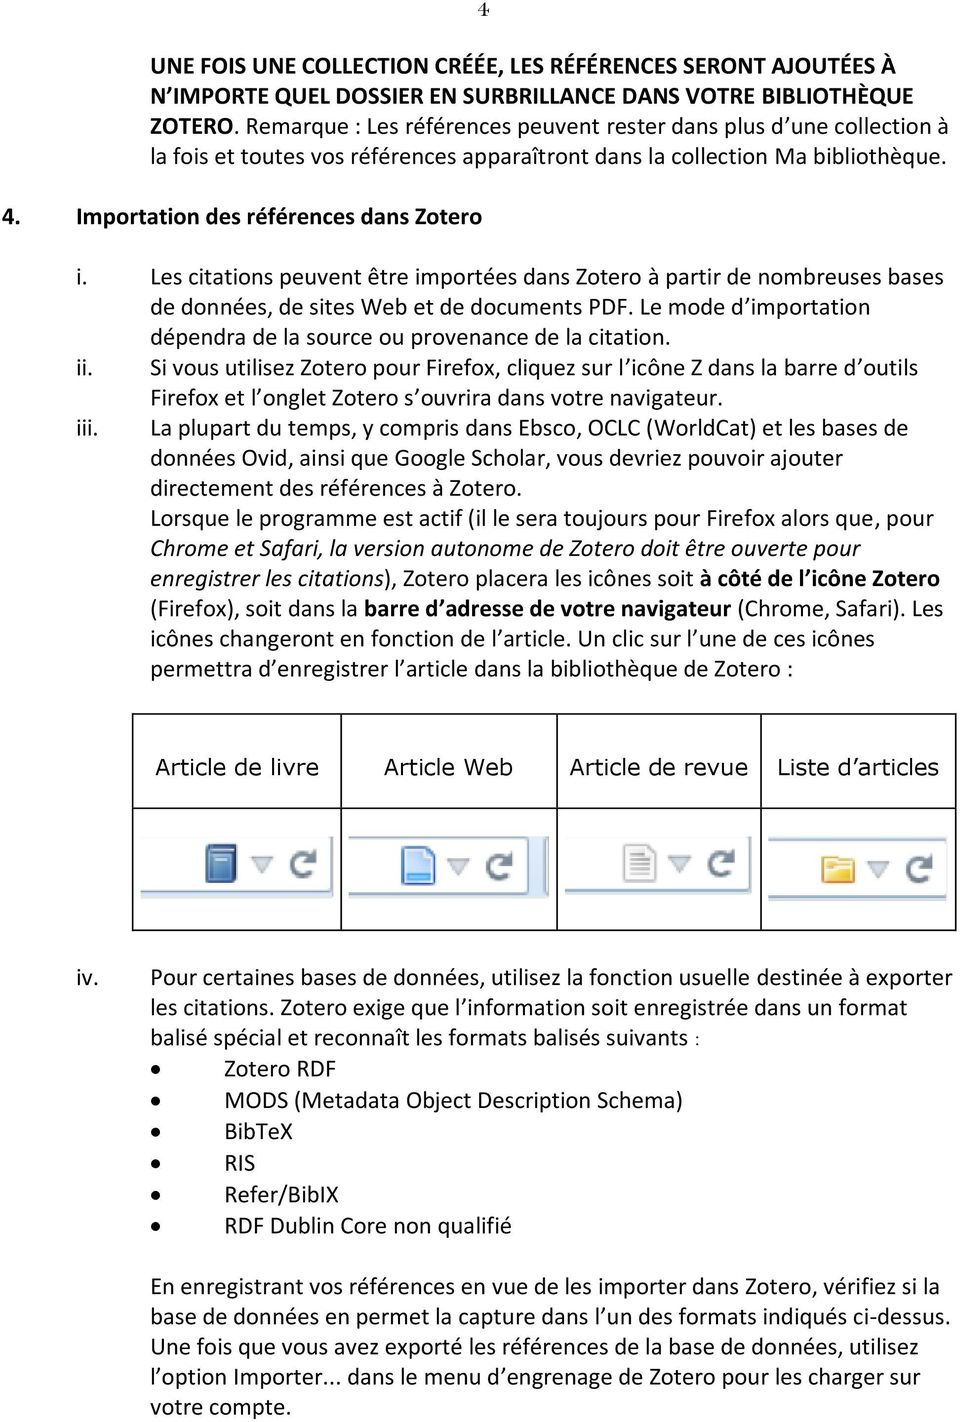 Les citations peuvent être importées dans Zotero à partir de nombreuses bases de données, de sites Web et de documents PDF. Le mode d importation dépendra de la source ou provenance de la citation.